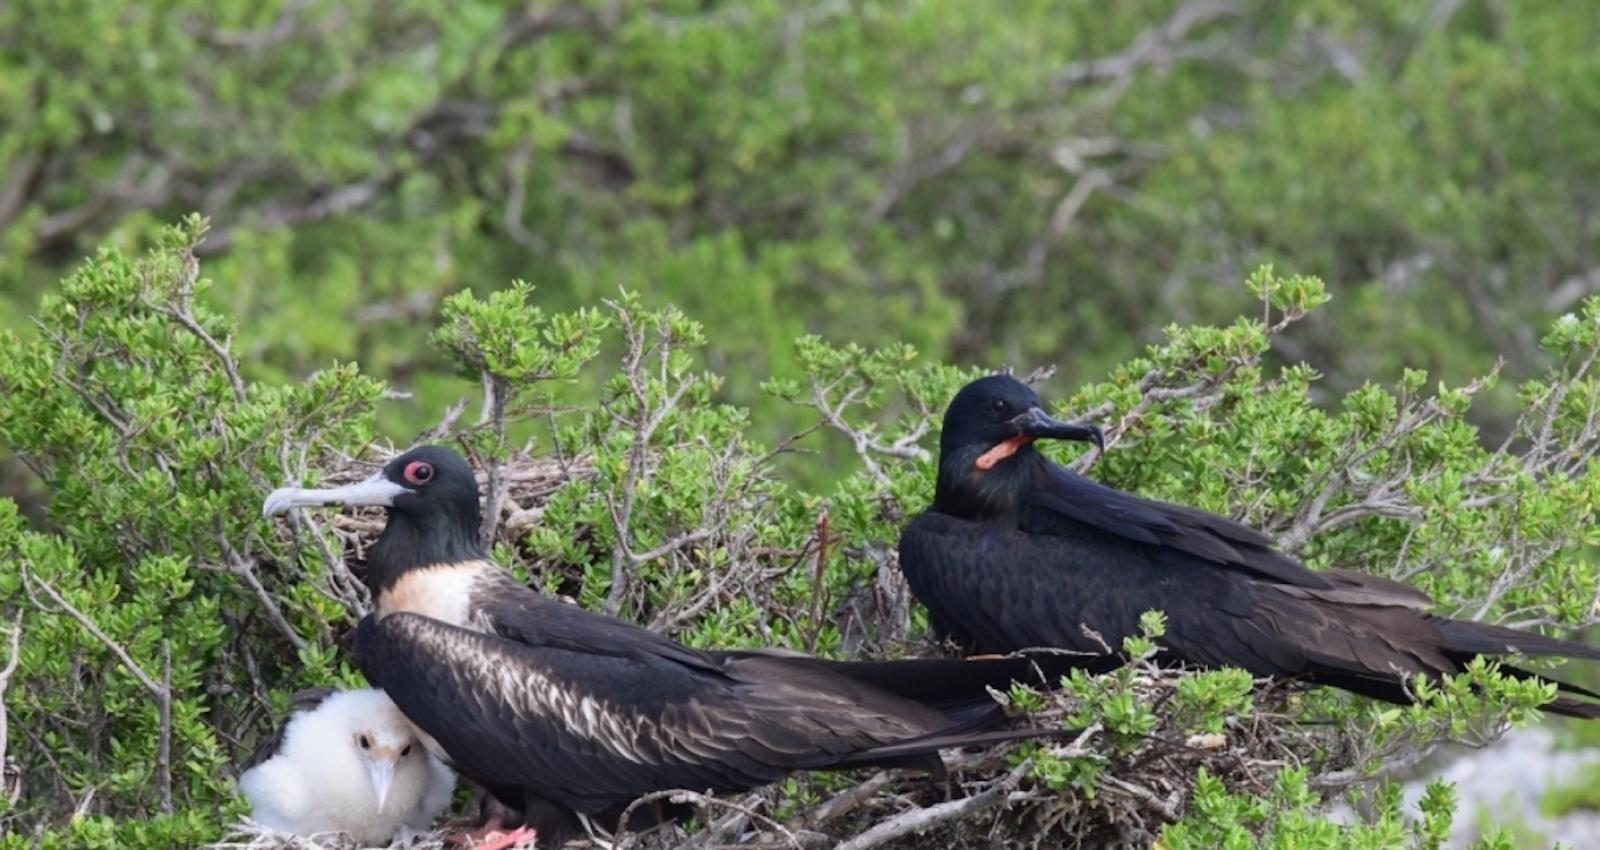 A family of frigatebirds